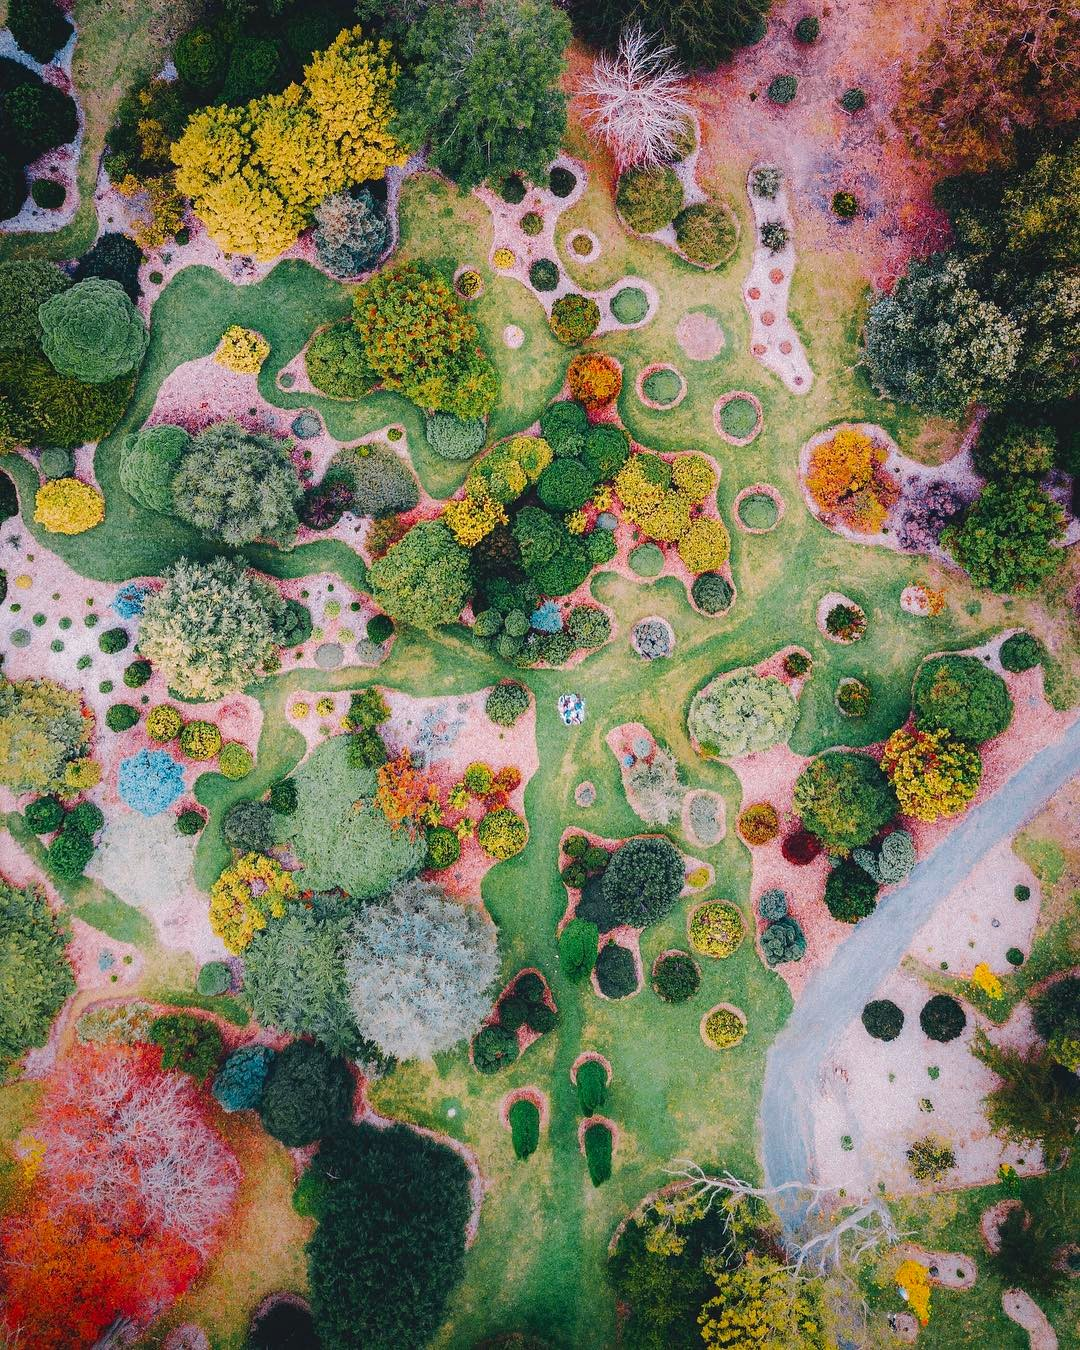 Colorful photograph of a botanical garden in Adelaide, South Australia taken with a DJi Maverick Drone